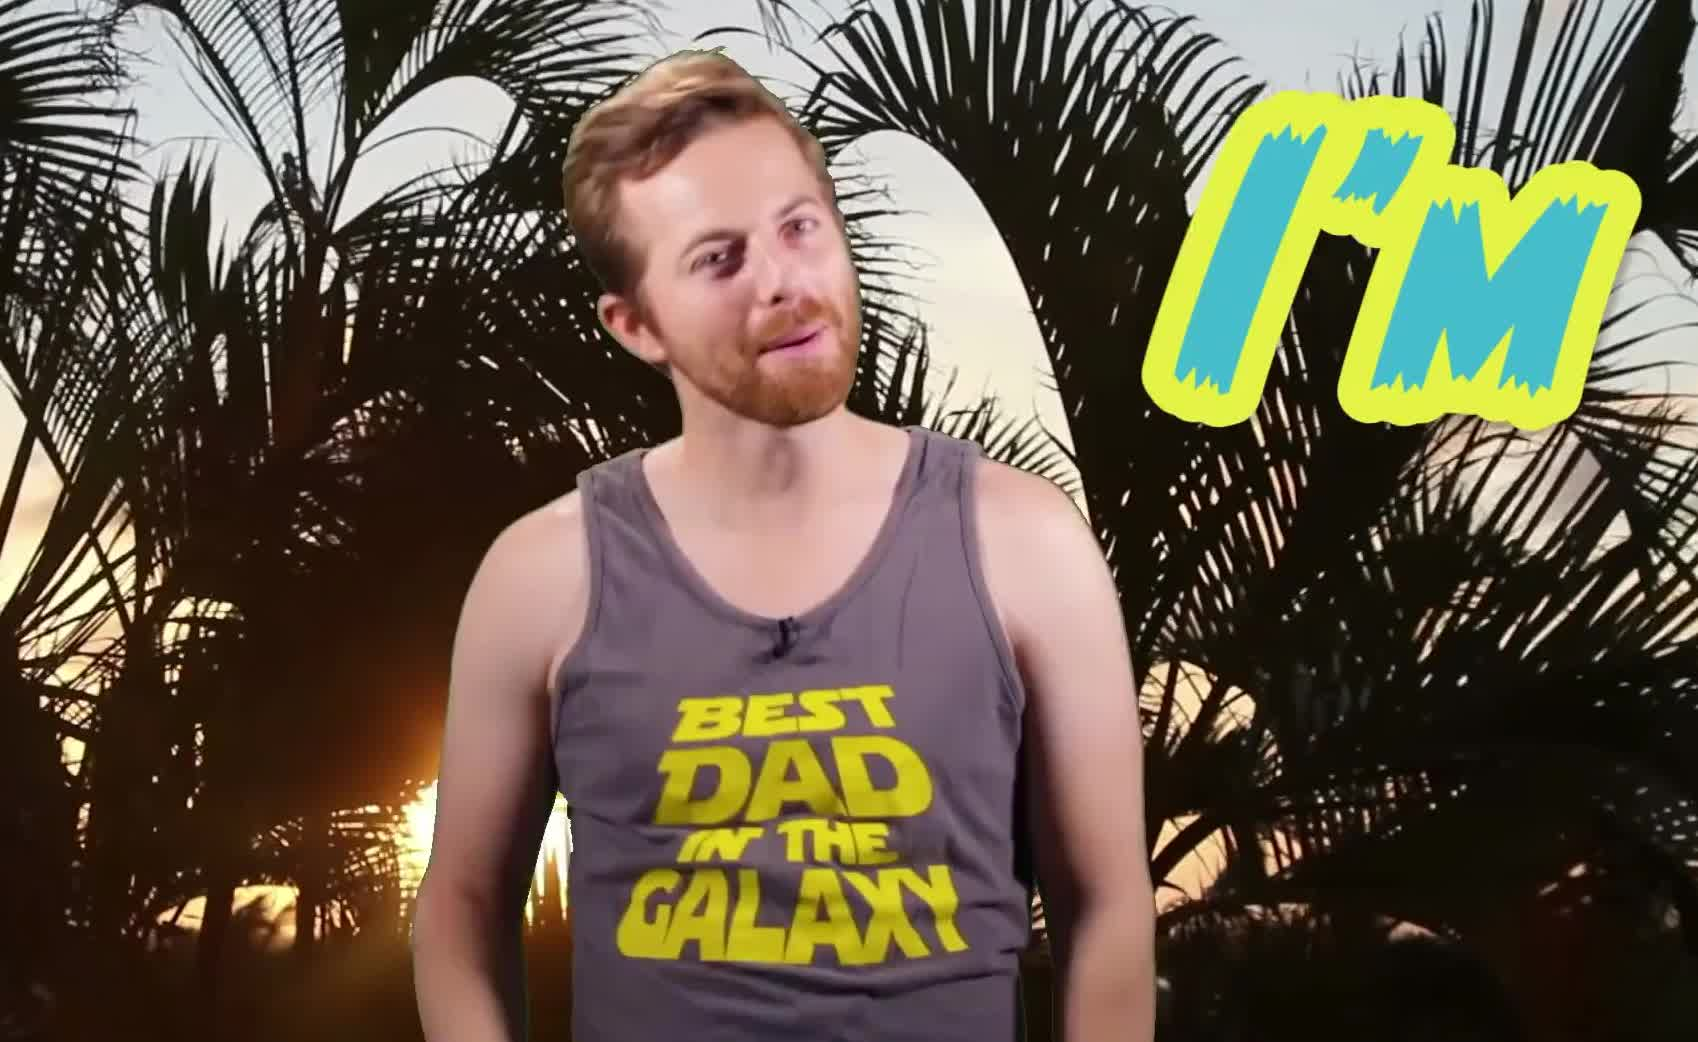 best, bitch, dad, day, excited, galaxy, guys, happy, i'm, in, leave, lol, off, on, palm, summer, the, trees, try, vacation, I'm On Vacation, Bitch GIFs